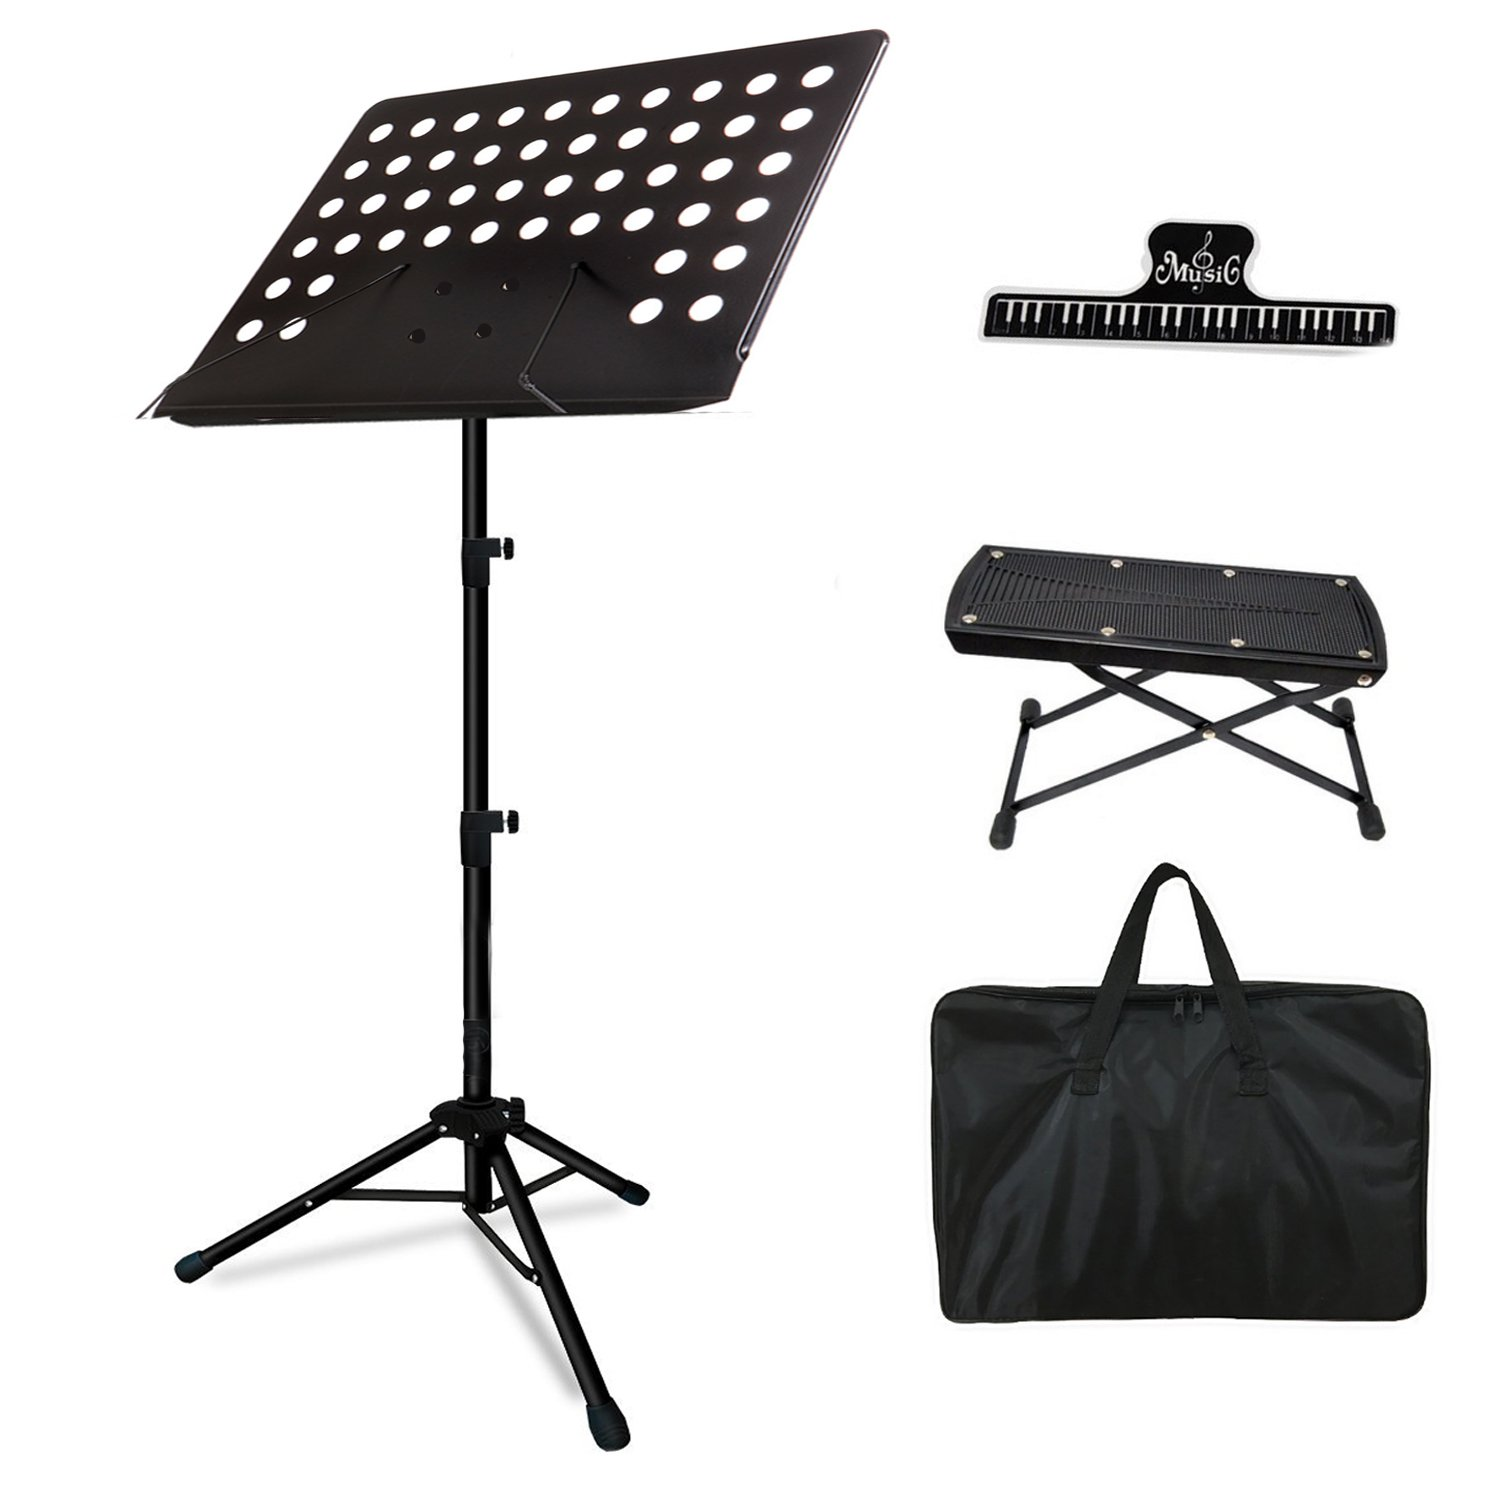 Music Stand, Professional Collapsible Music Stand for Music Sheet, with Music Book Clip, Guitar Footrest and Carrying Bag suitable for Violin, Guitar, Flute and Instrumental Performance